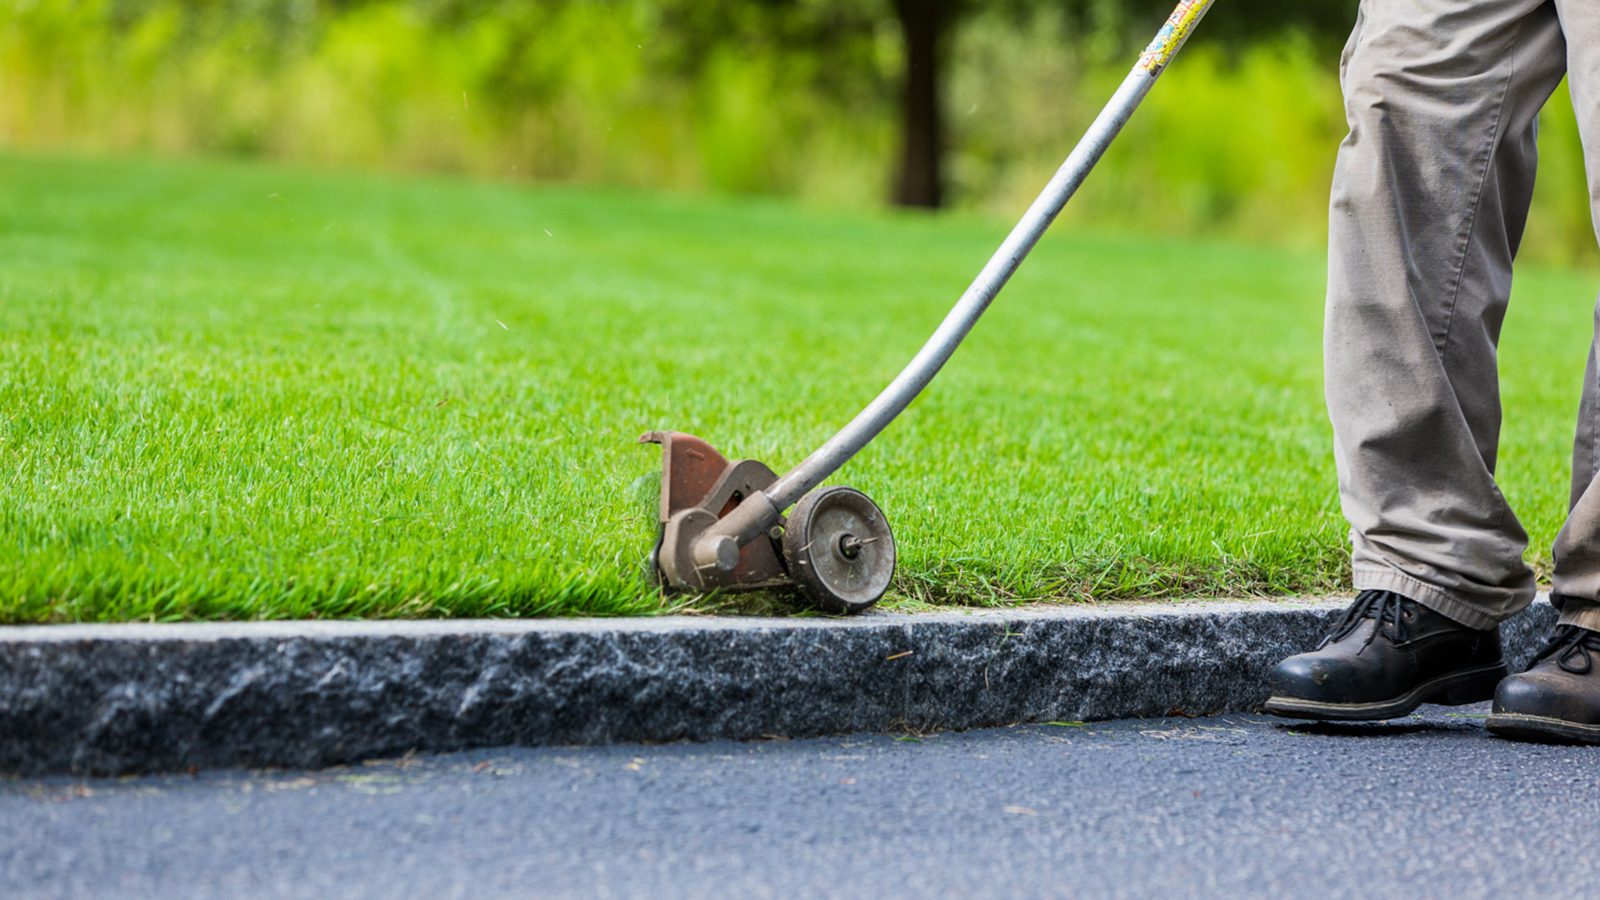 Lawn Maintenance Services in South Carolina 7